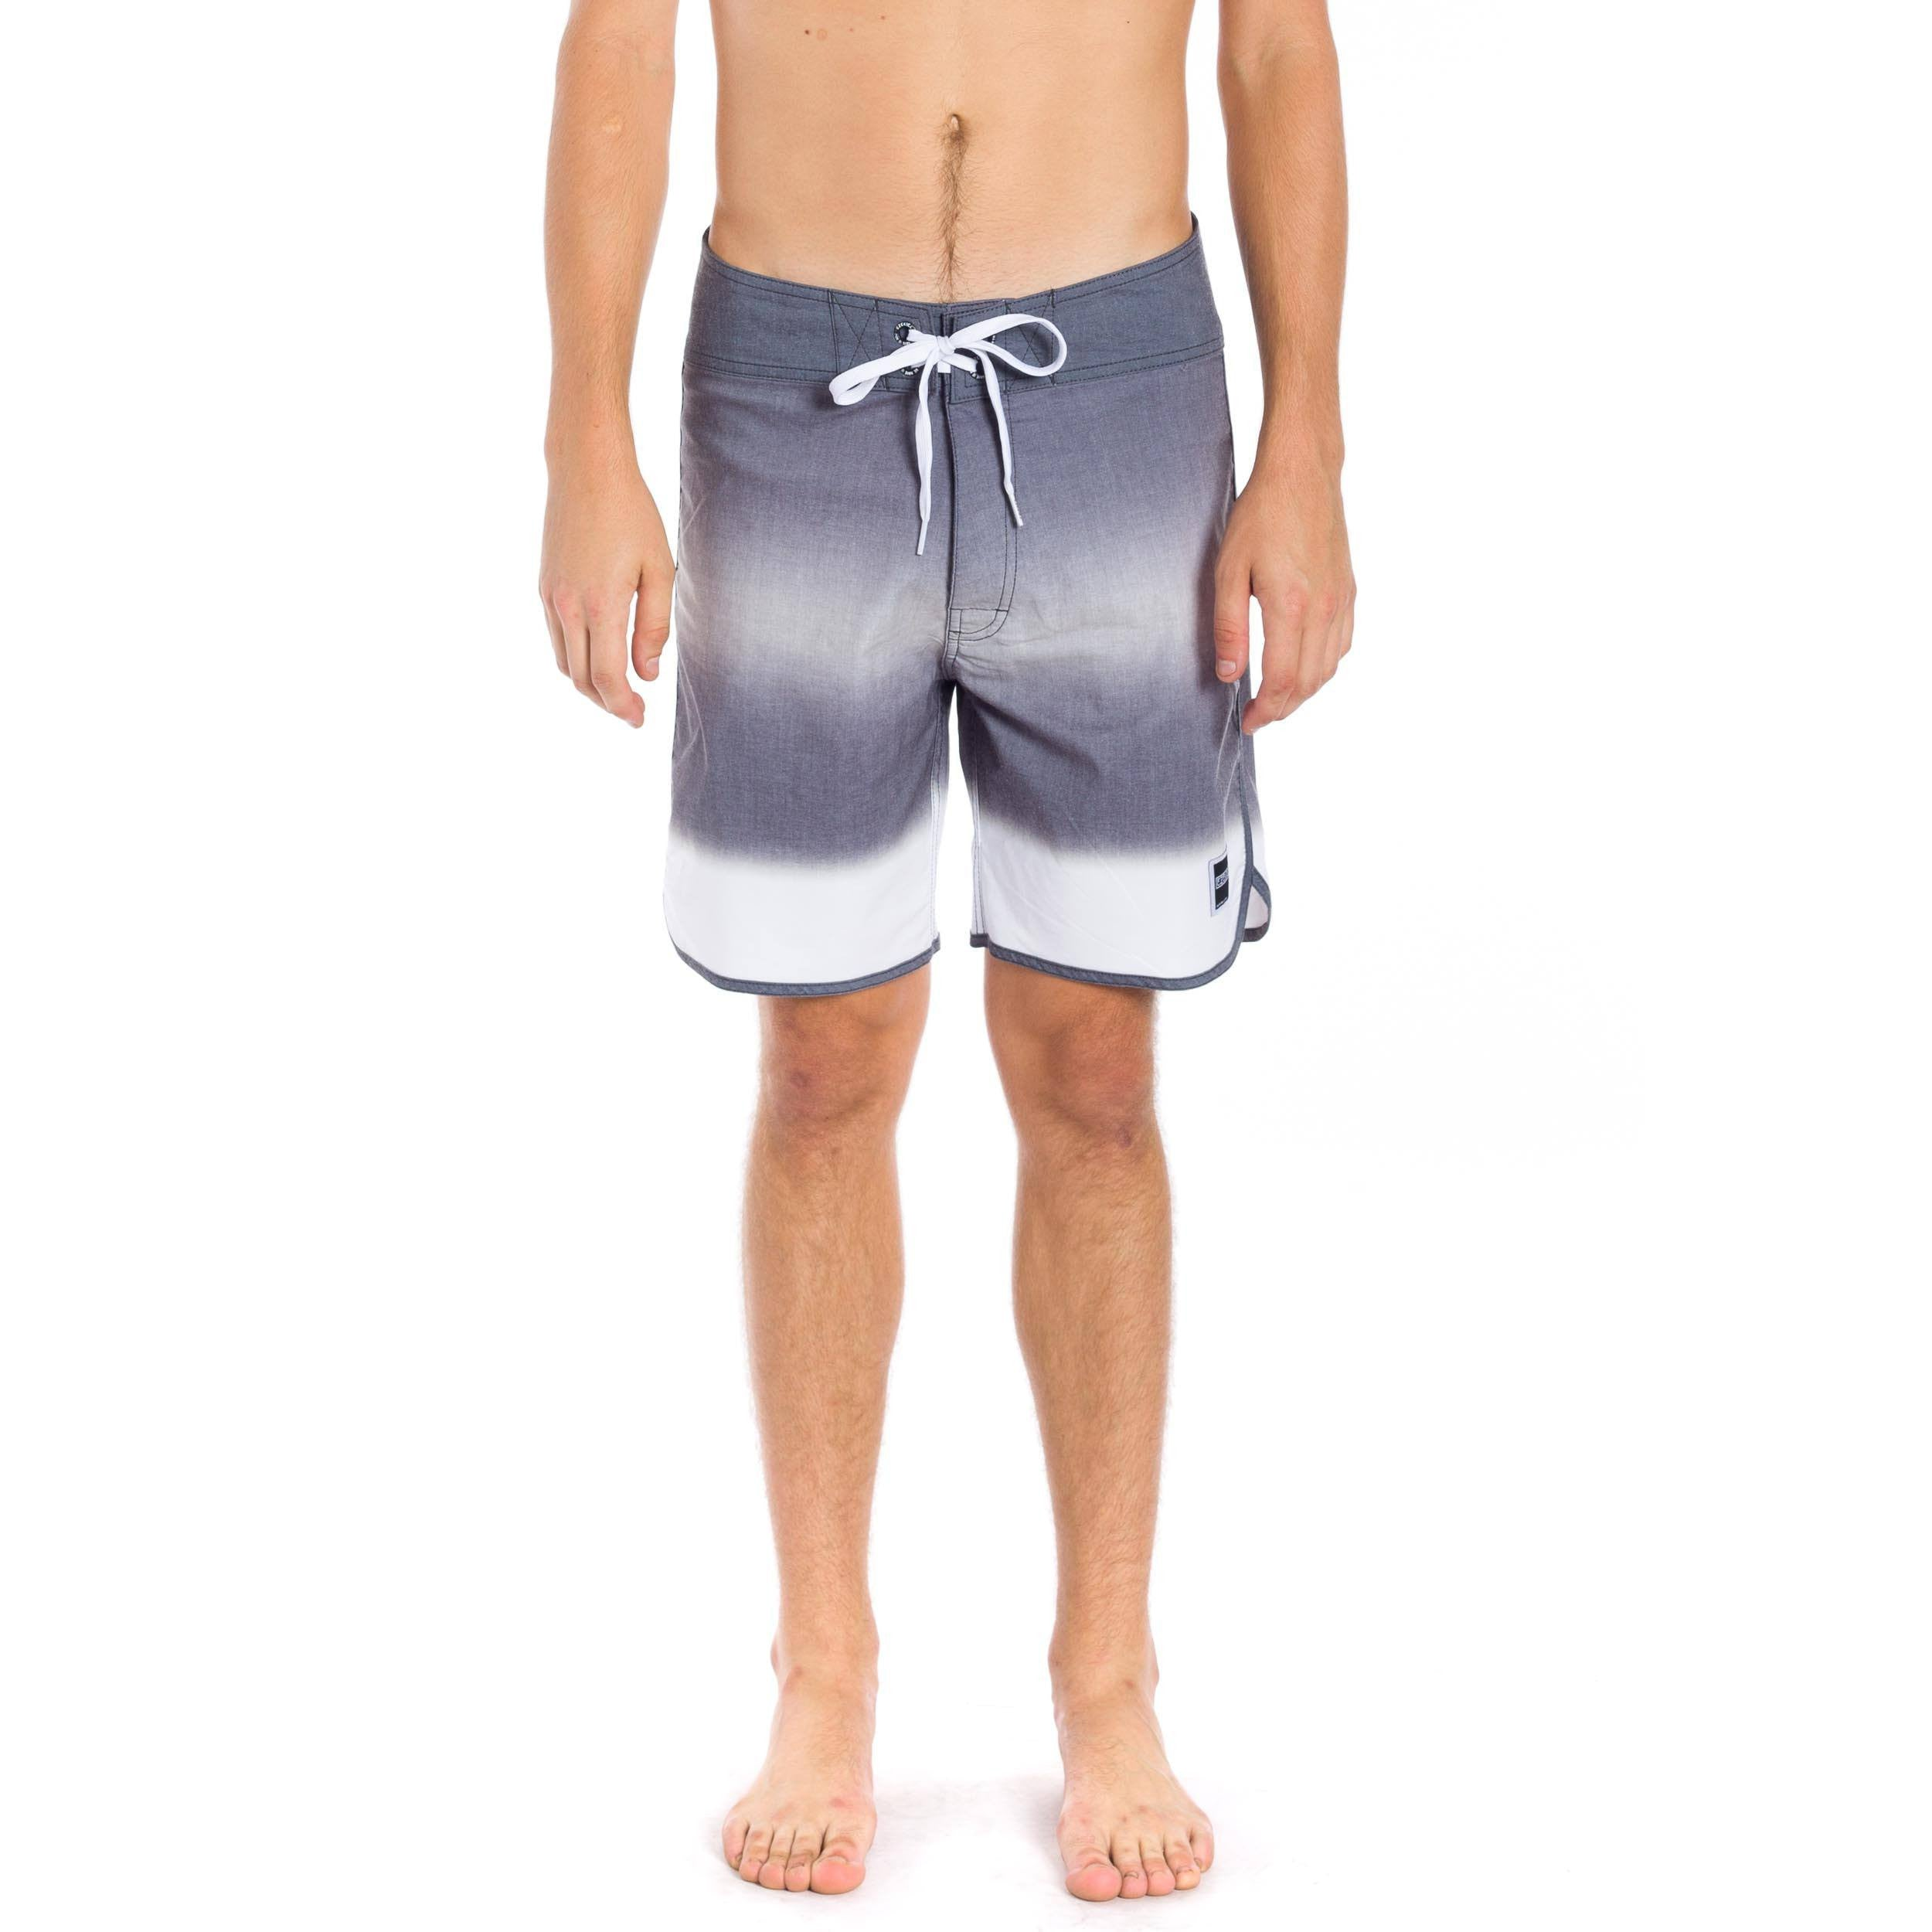 Fever Boardshort - Black